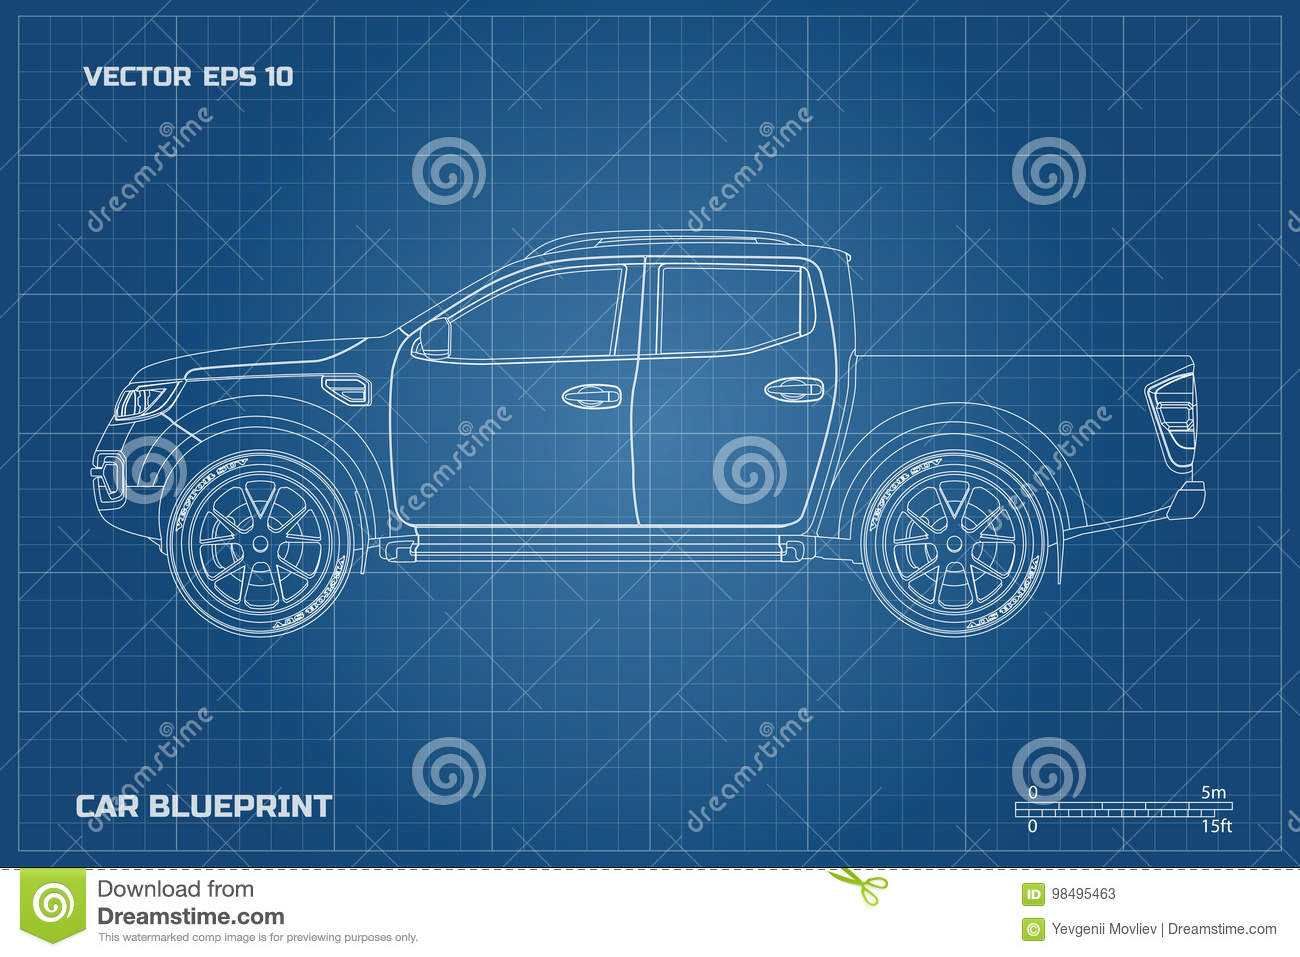 Drawing of the car on a blue background side view of pickup drawing of the car on a blue background side view of pickup industrial blueprint of suv royalty free vector malvernweather Image collections